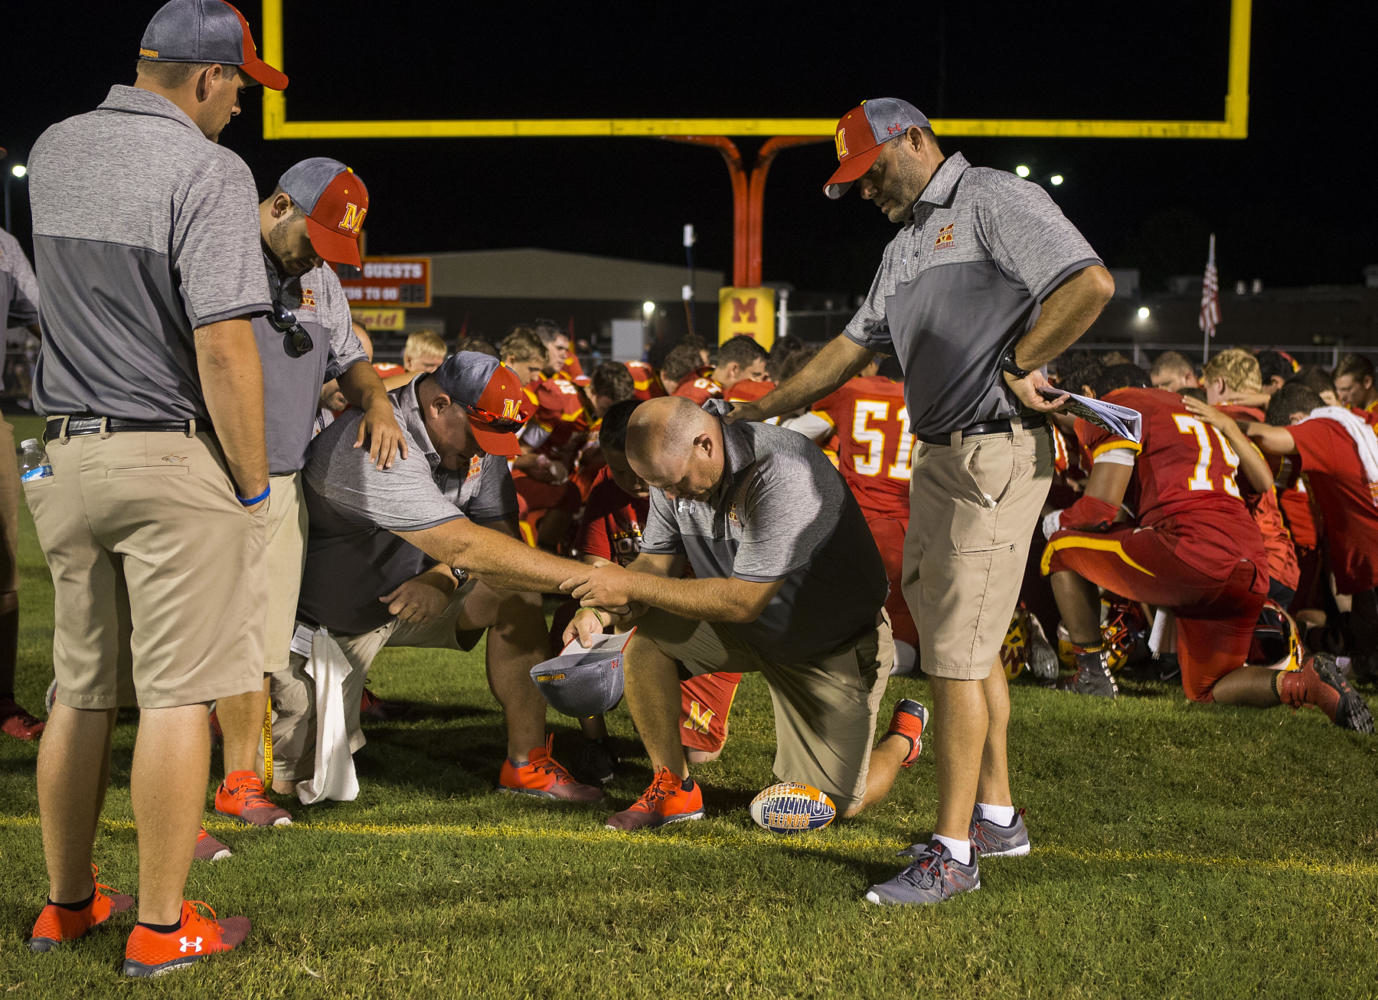 The Red Devils coaching staff prays together after losing to the Carbondale Terriers in the the 100th meeting of the two teams on Friday, Aug. 25, 2017, at